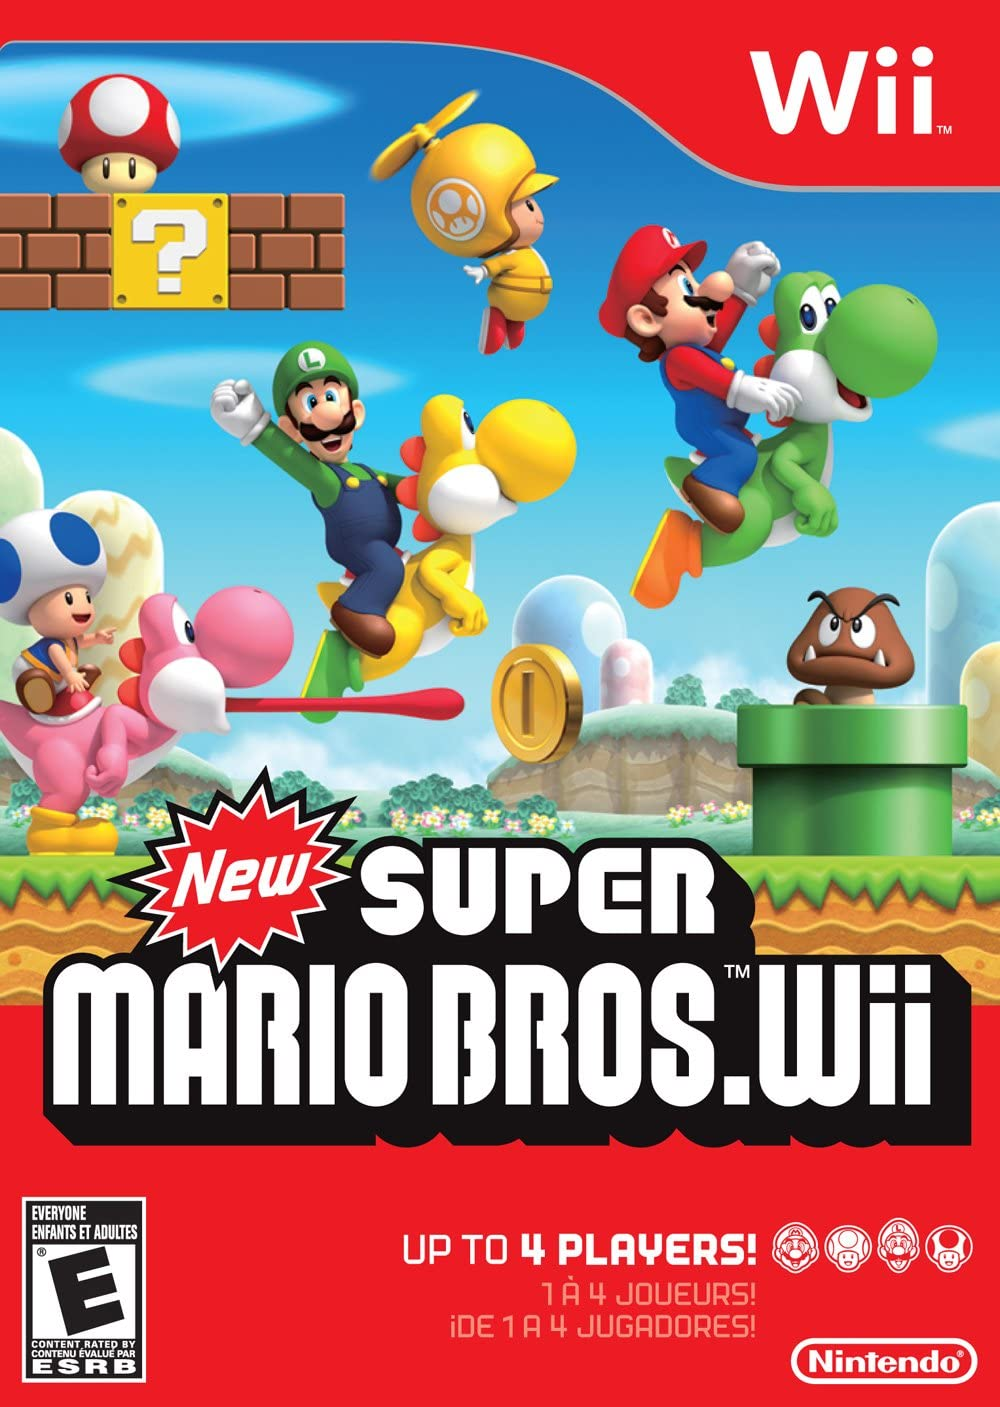 d41637f9fa0 Amazon.com  New Super Mario Bros. Wii  Nintendo Wii  Nintendo of America   Video Games